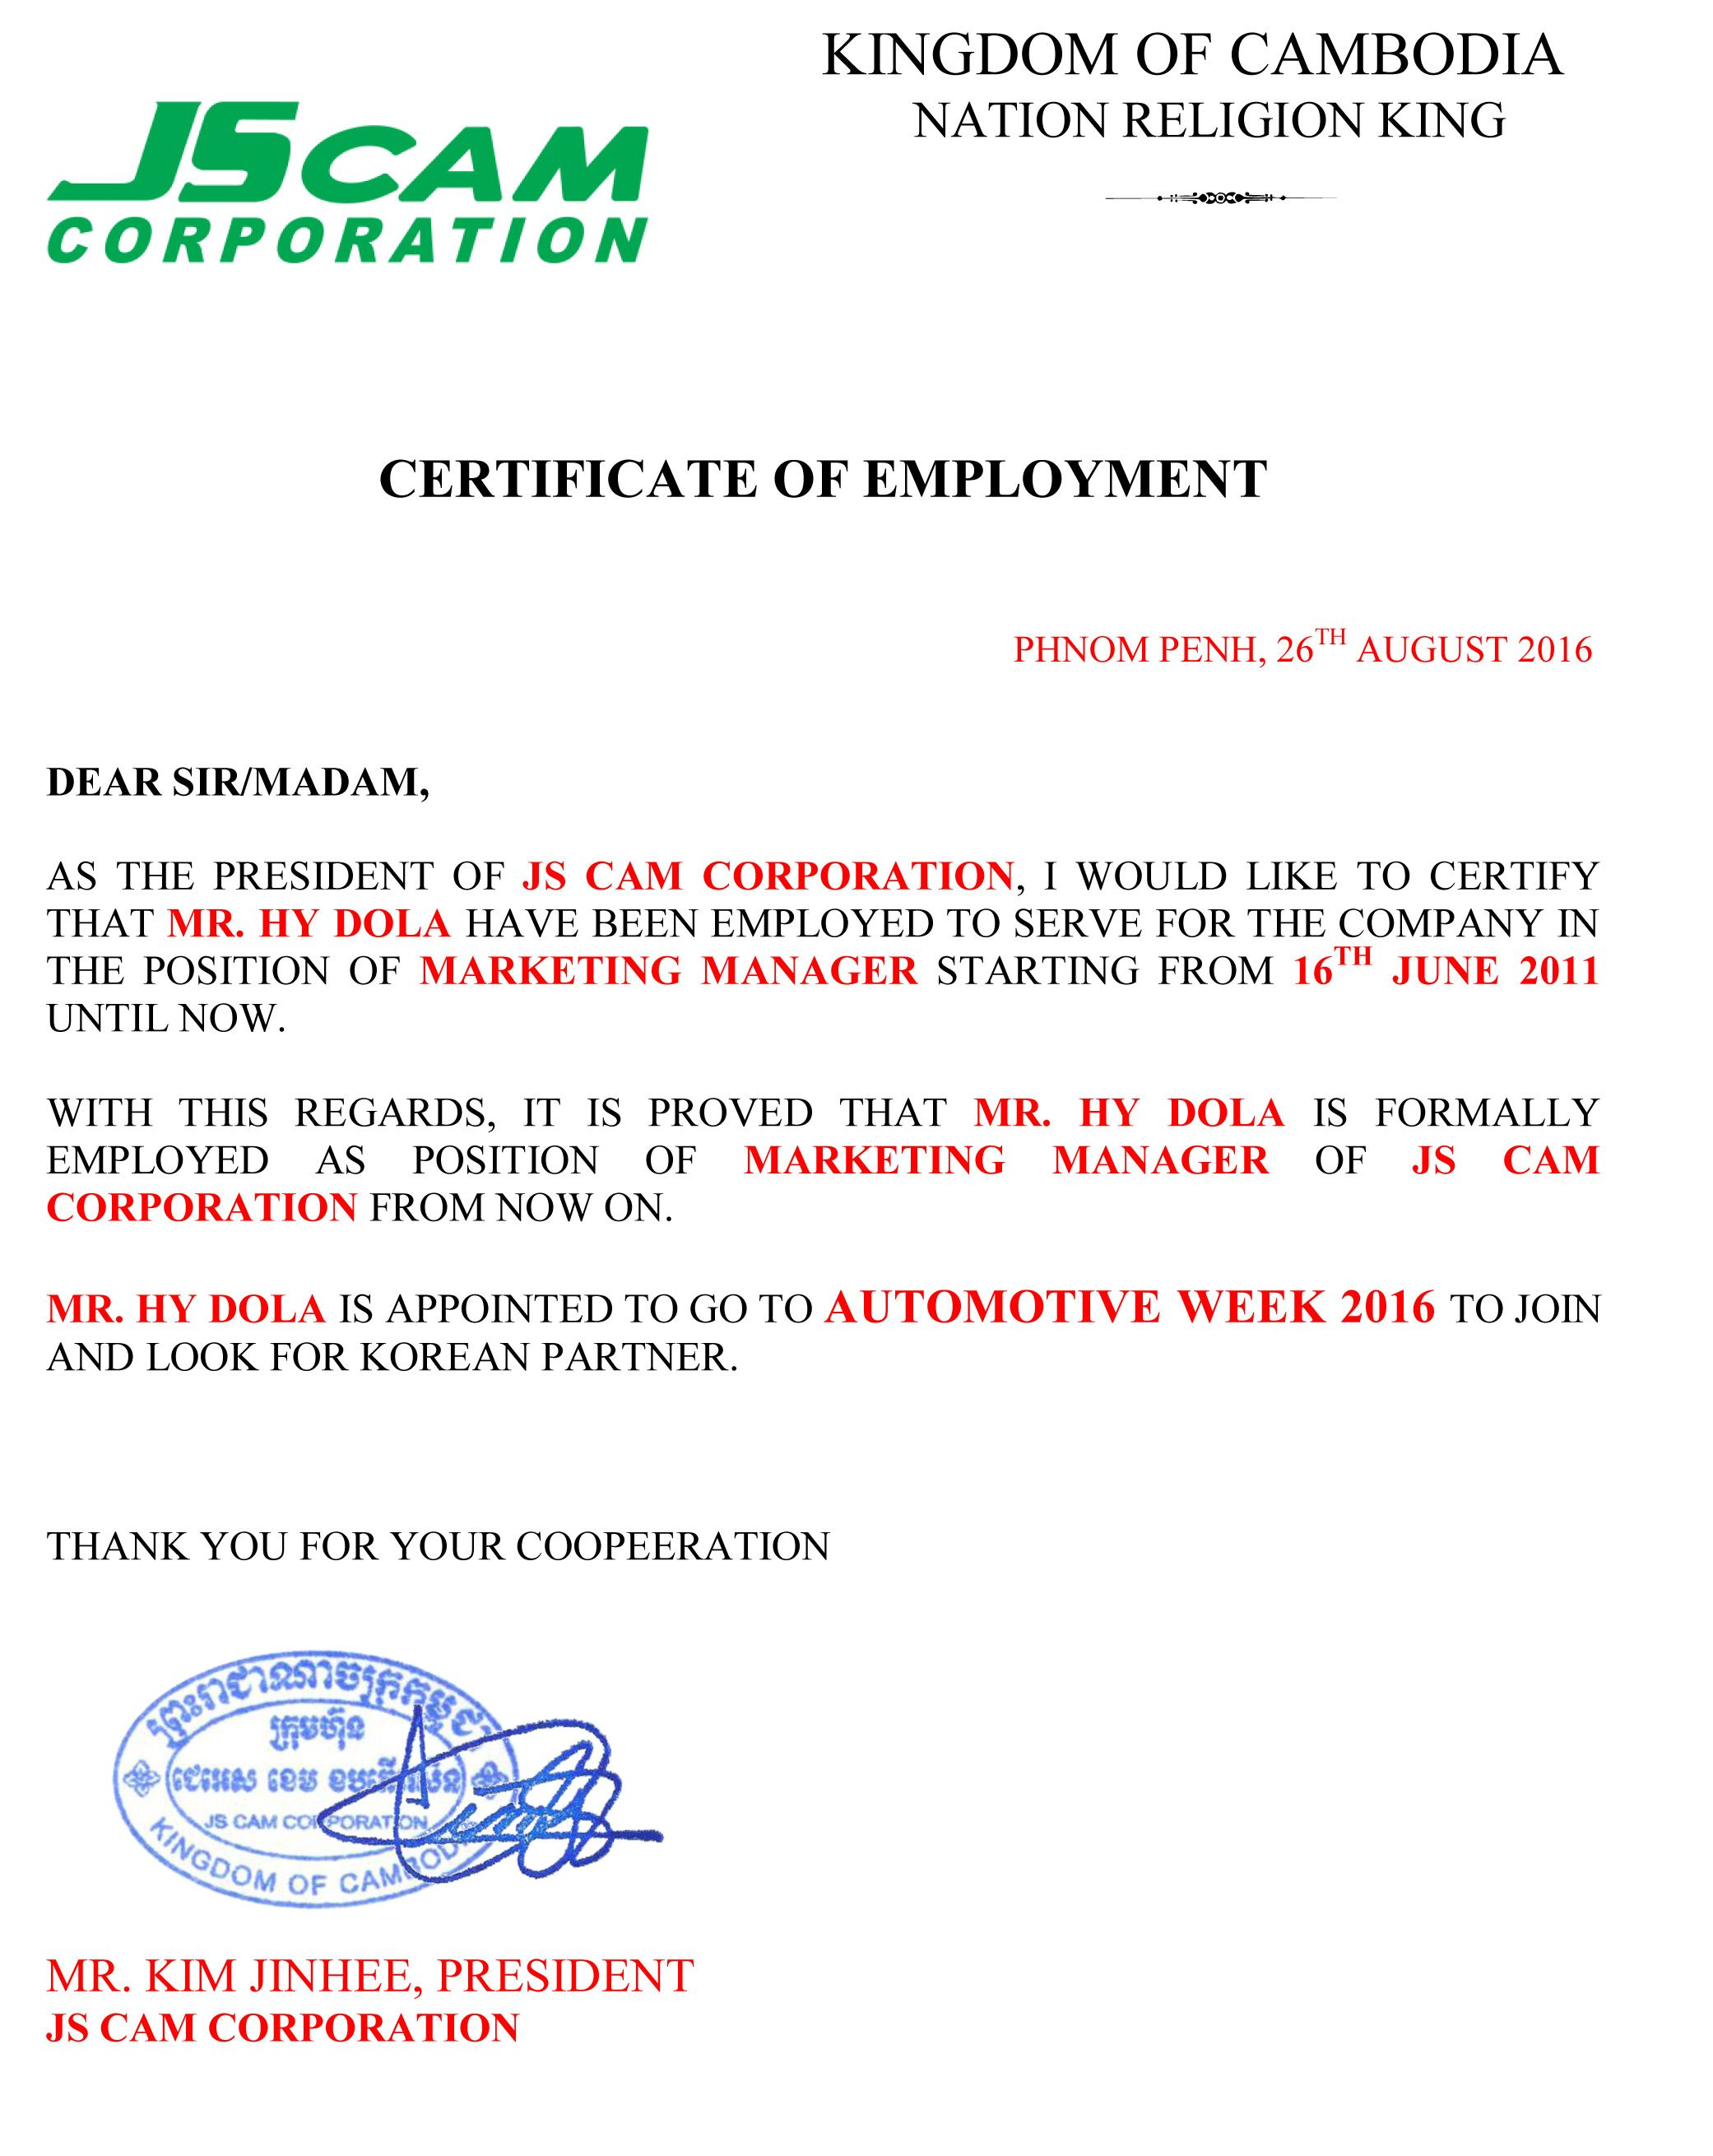 Letter for certificate employment visa application cover letter for certificate employment visa application cover certification sample residence interview yadclub Image collections